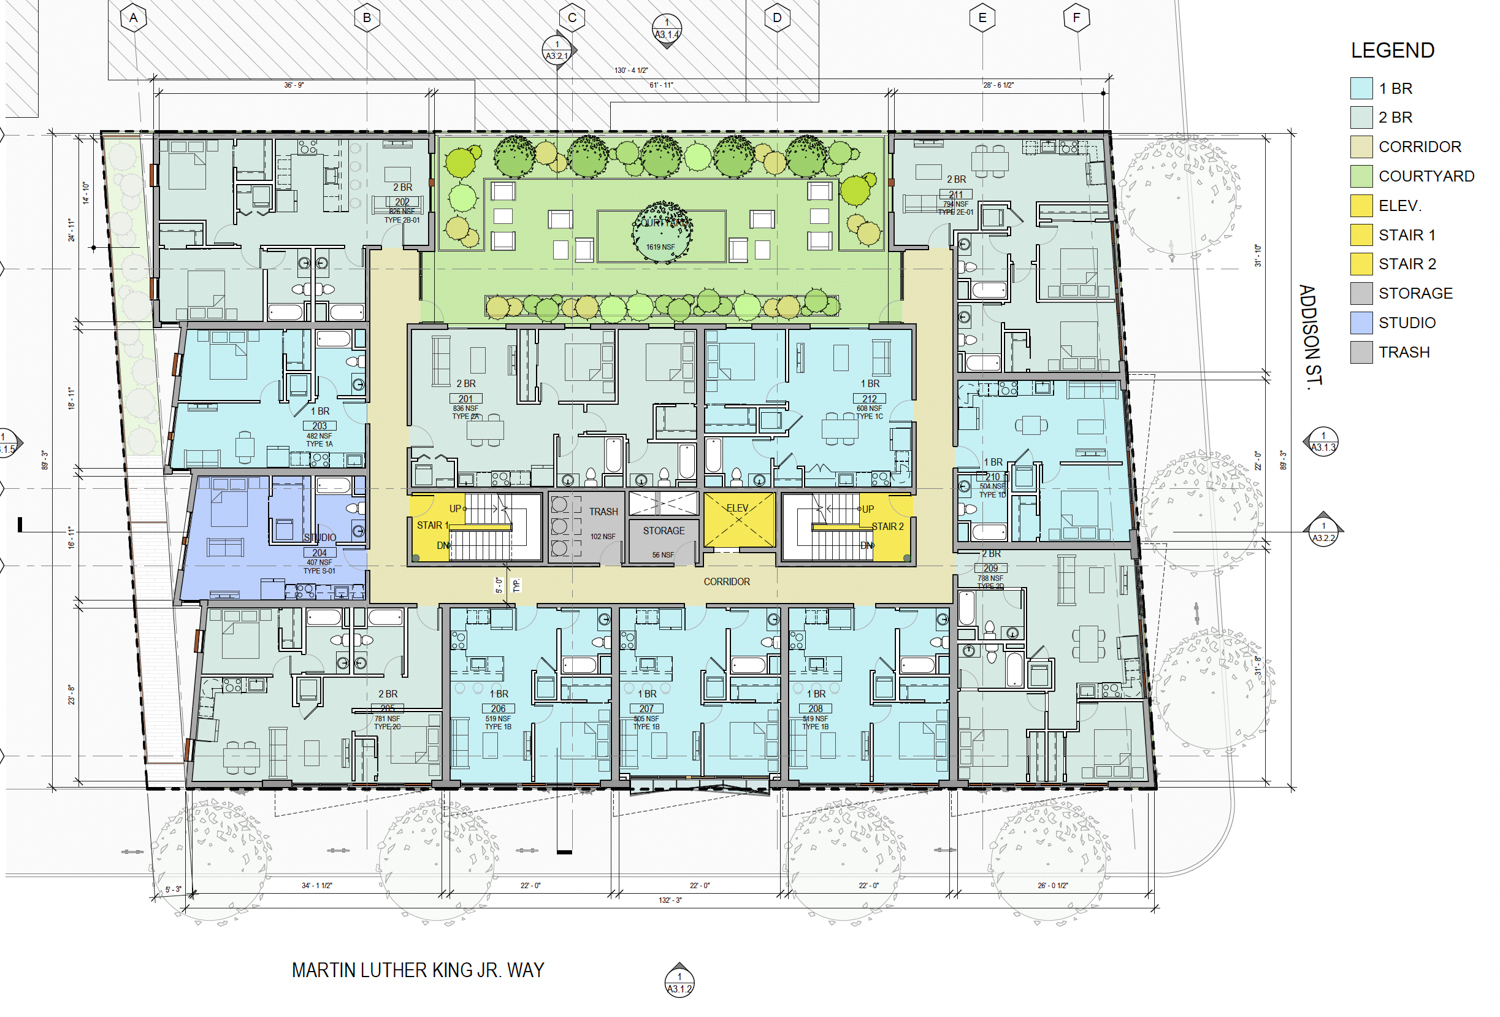 2099 Martin Luther King Jr Way floor plan, rendering by Kava Massih Architects